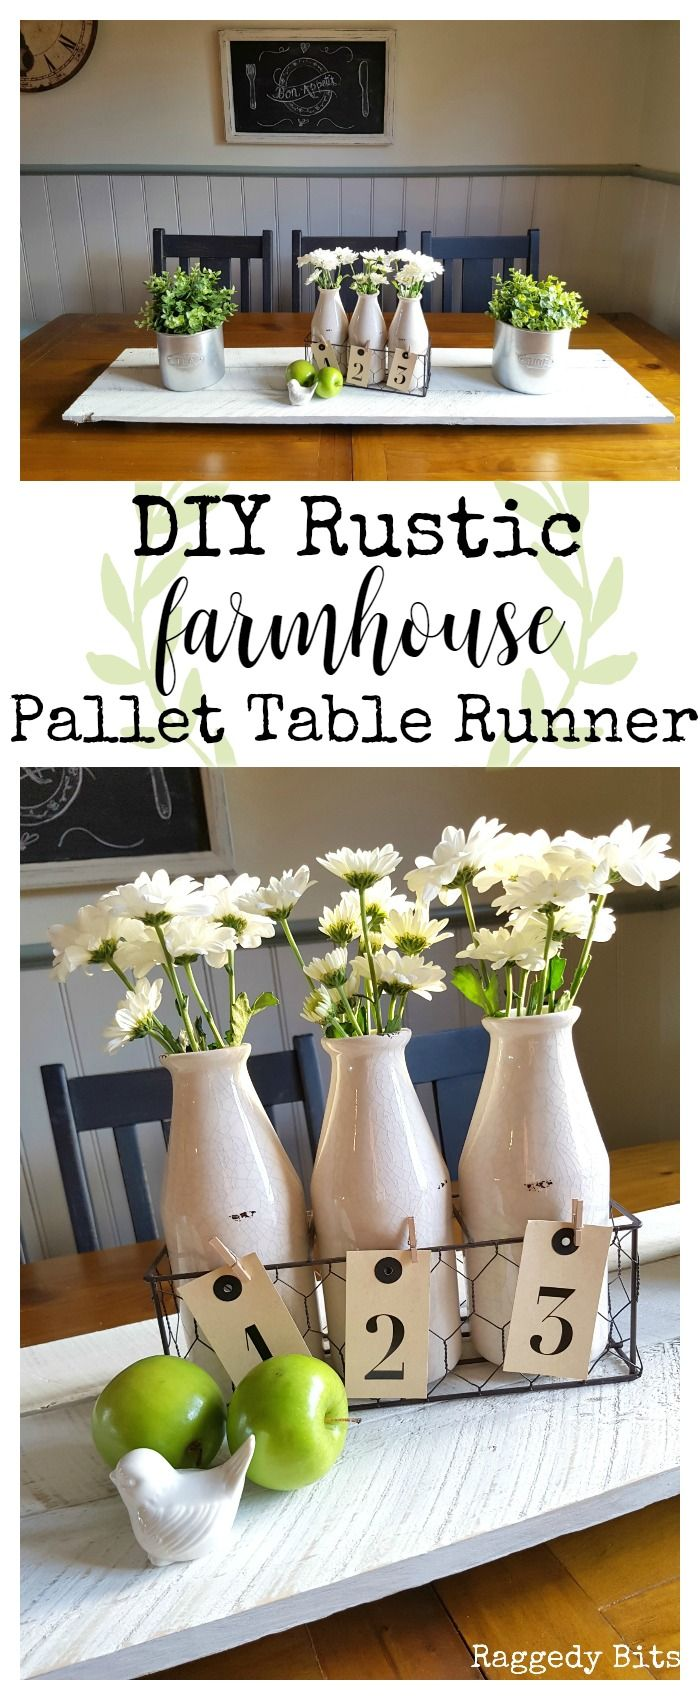 Using an old pallet make a super easy DIY Rustic Farmhouse Pallet Table Runner   Full Tutorial   www.raggedy-bits.com